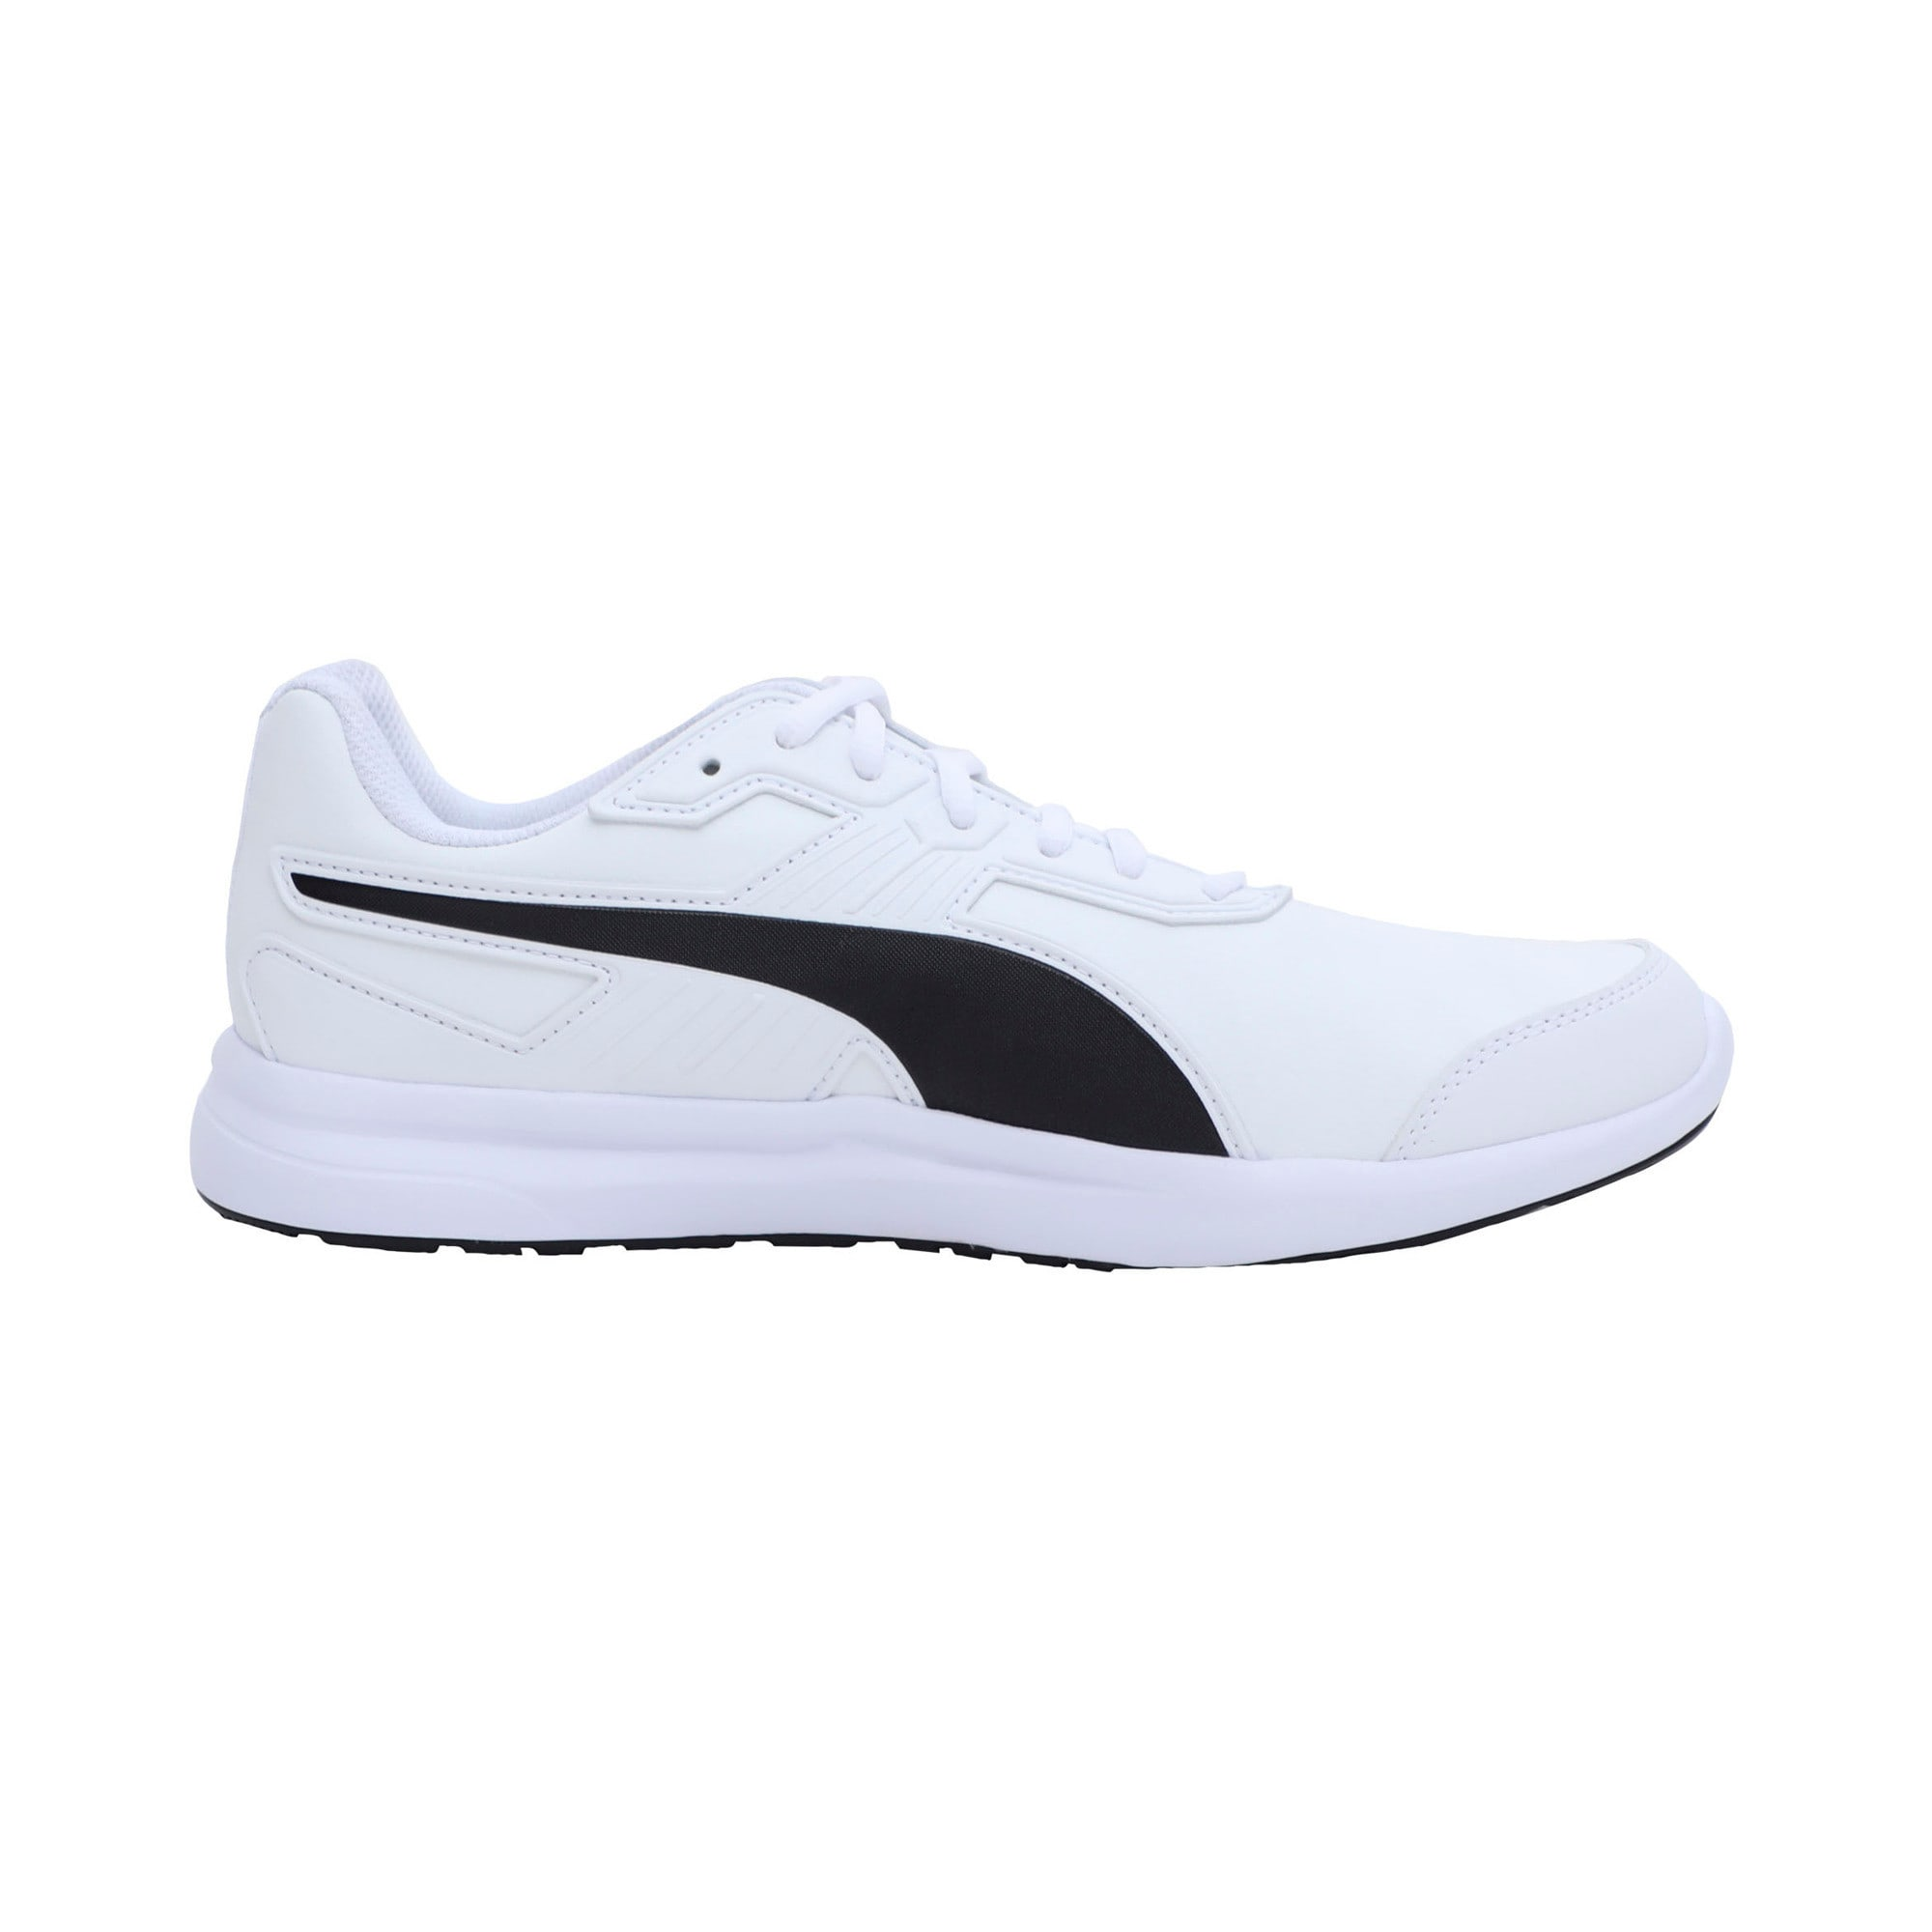 Thumbnail 5 of Escaper SL Trainers, Puma White-Puma Black, medium-IND